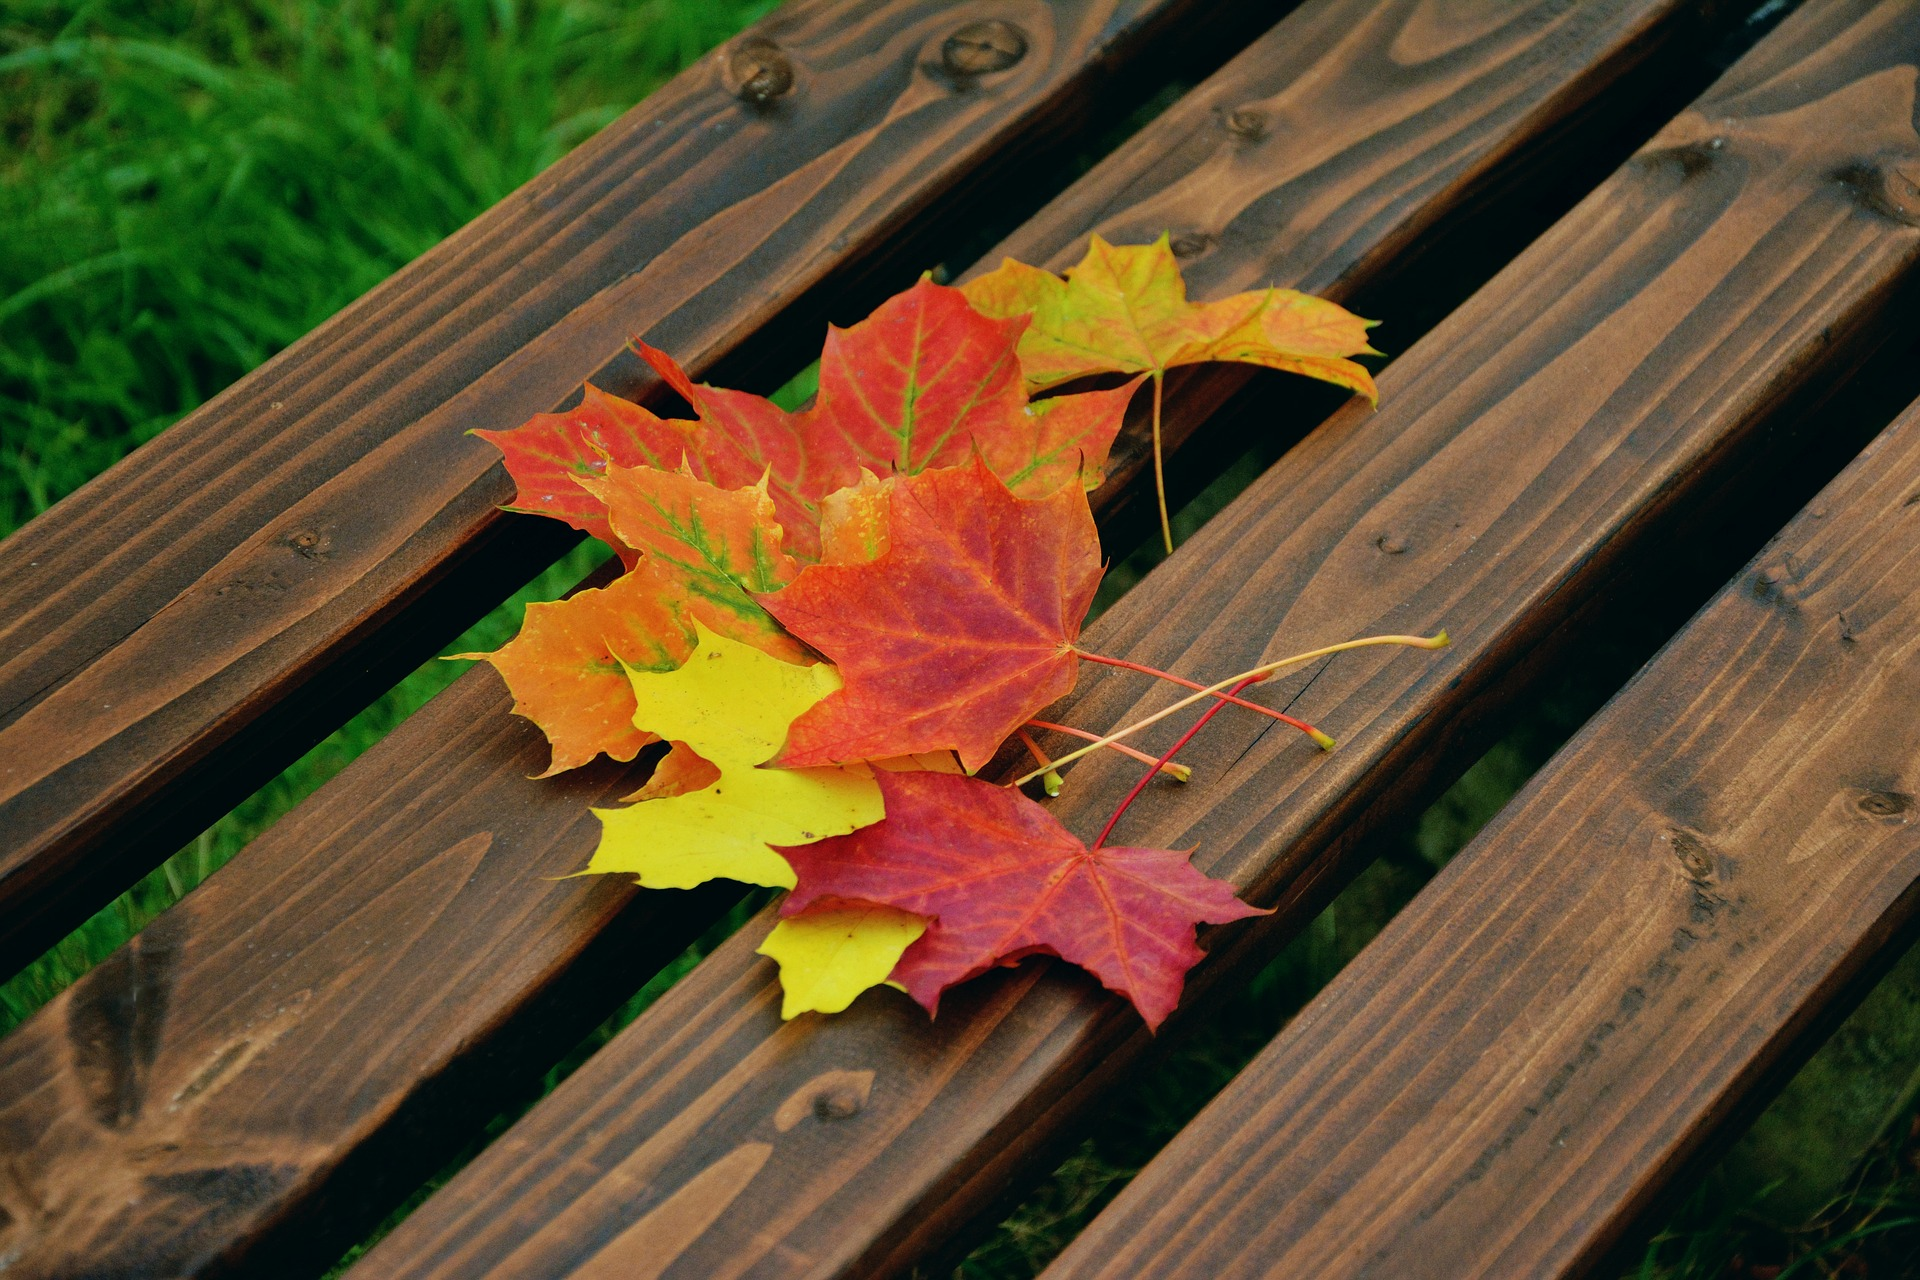 Autumn leaves on wood bench